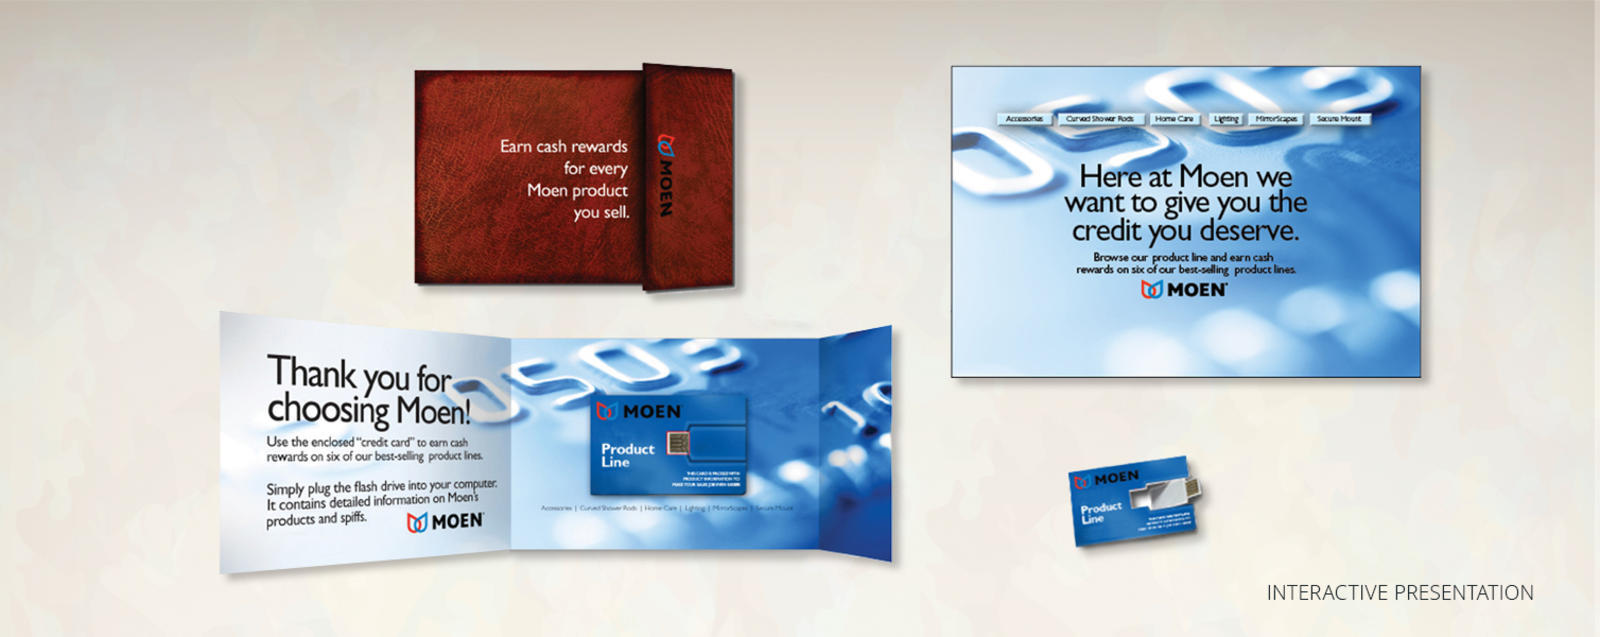 MOEN Promotion Collateral